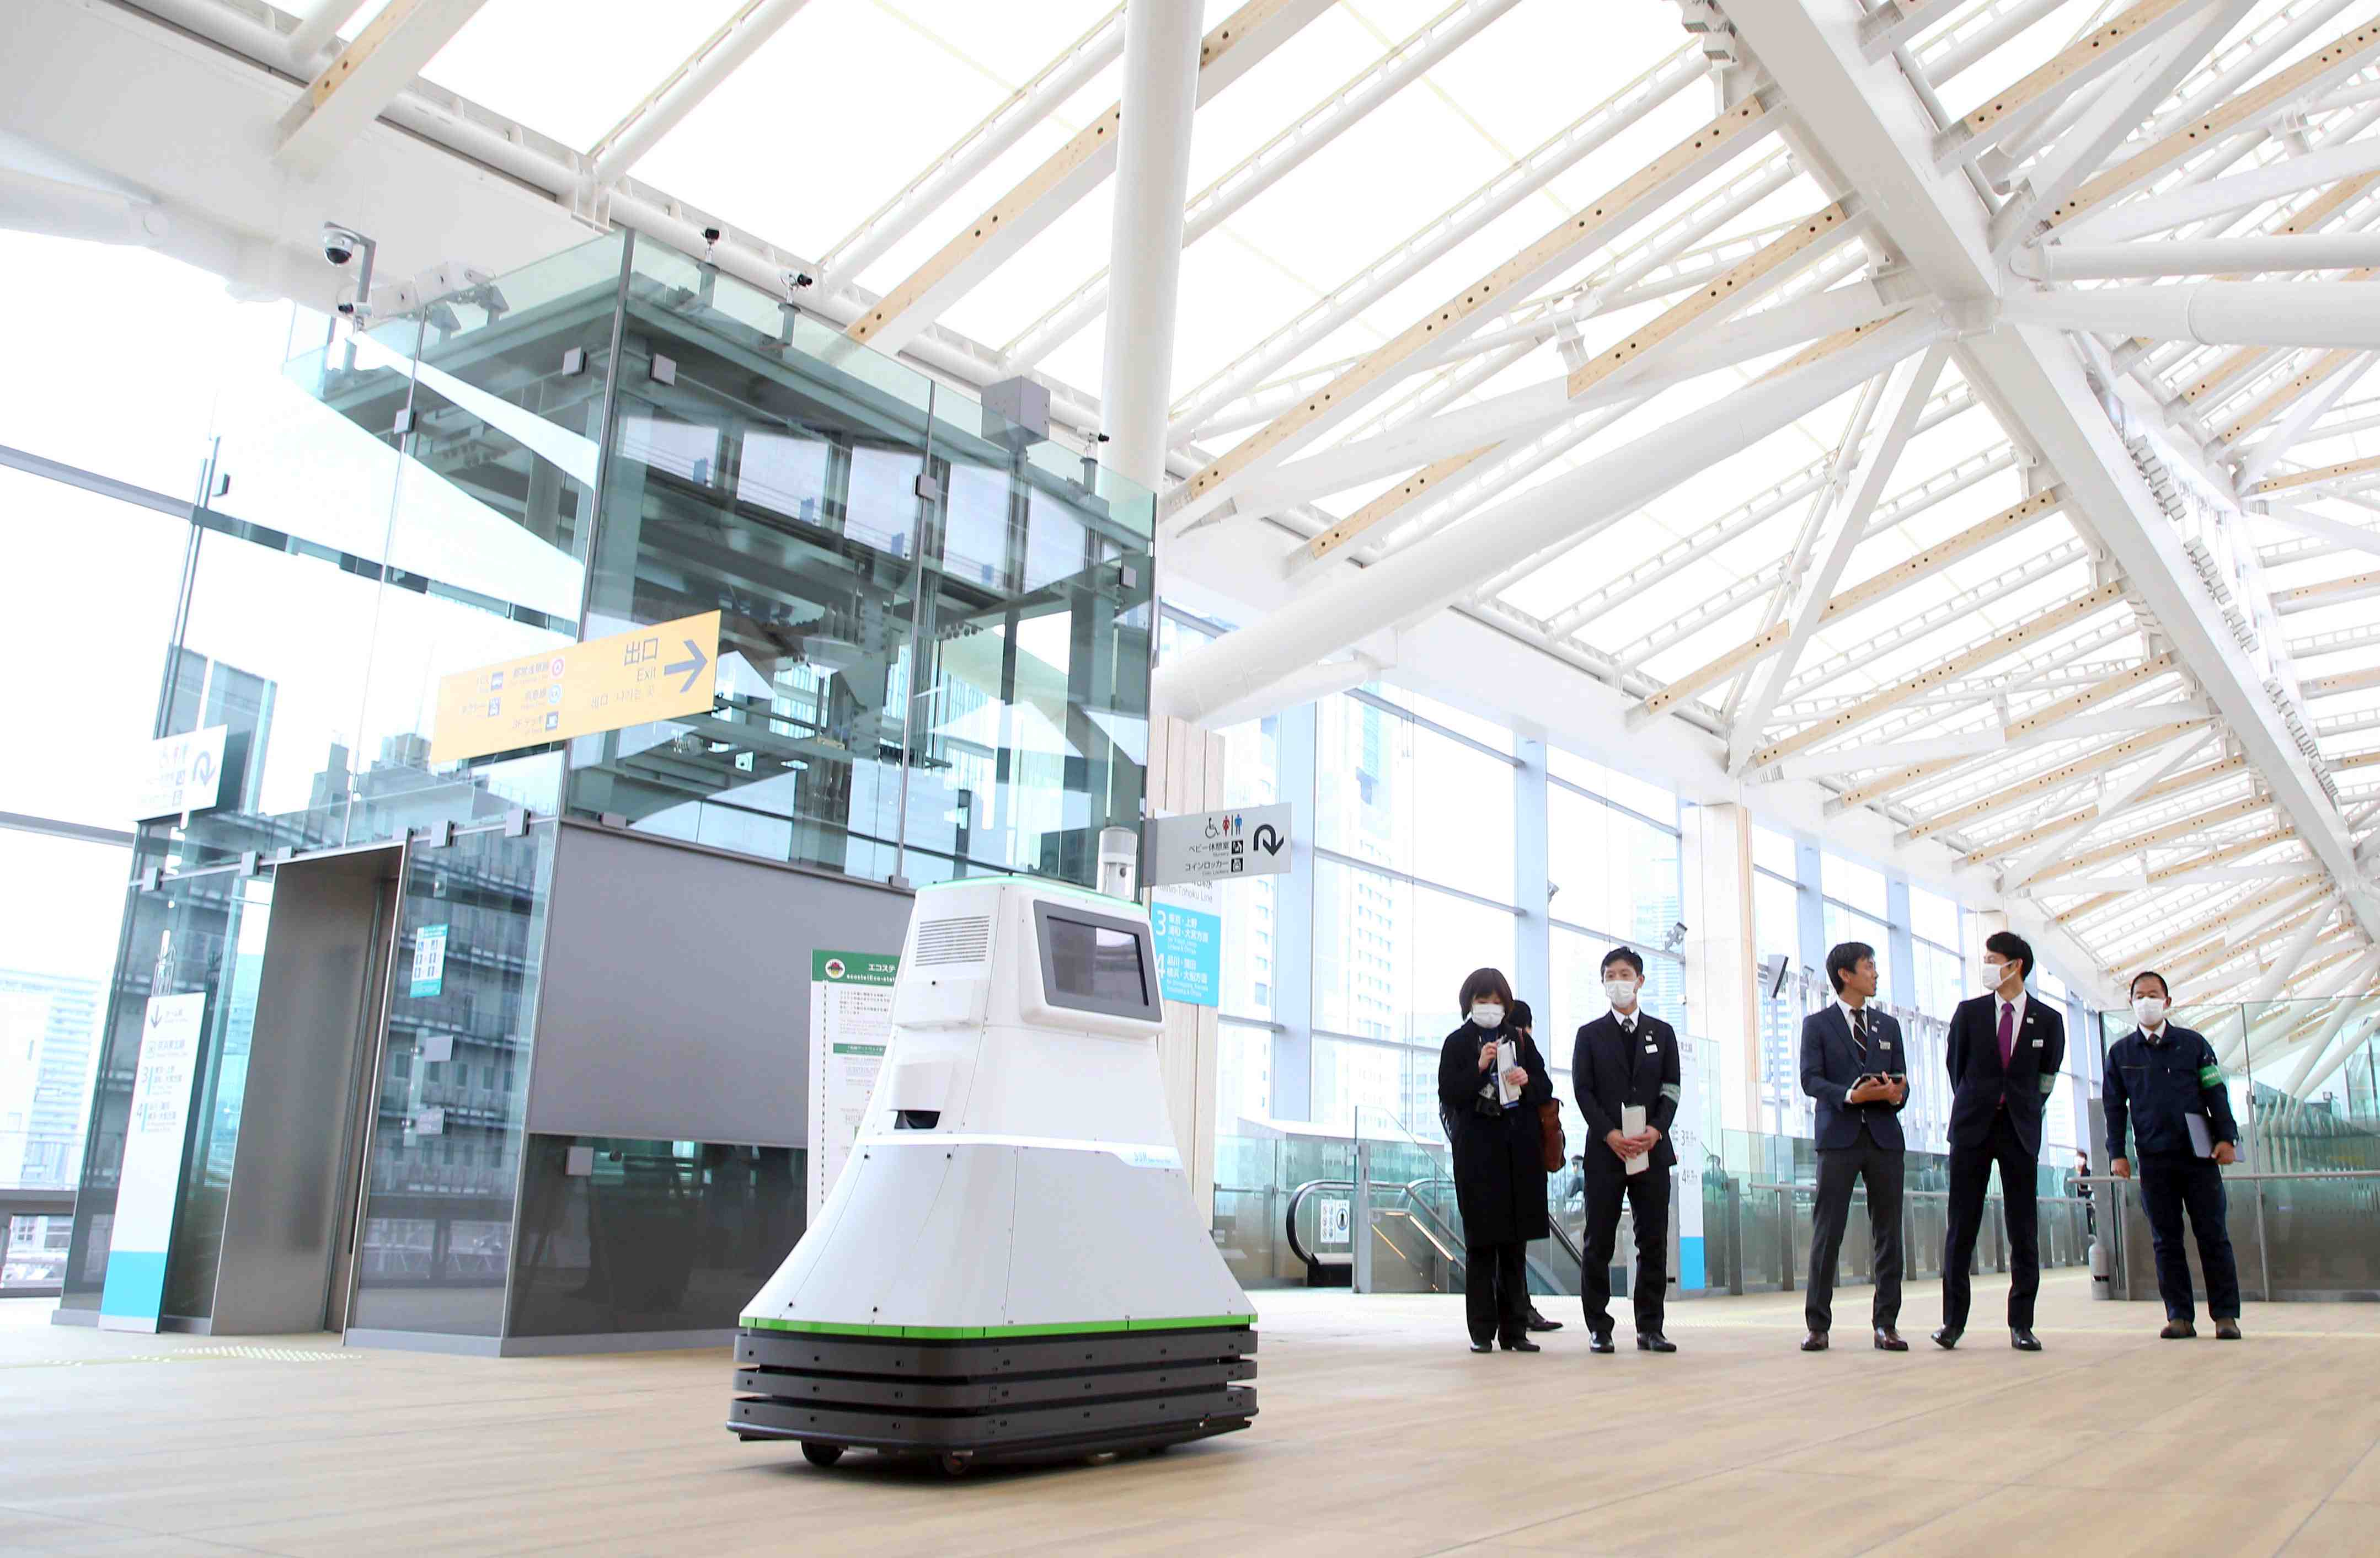 JR Takanawa Gateway Station Opening Robots AI